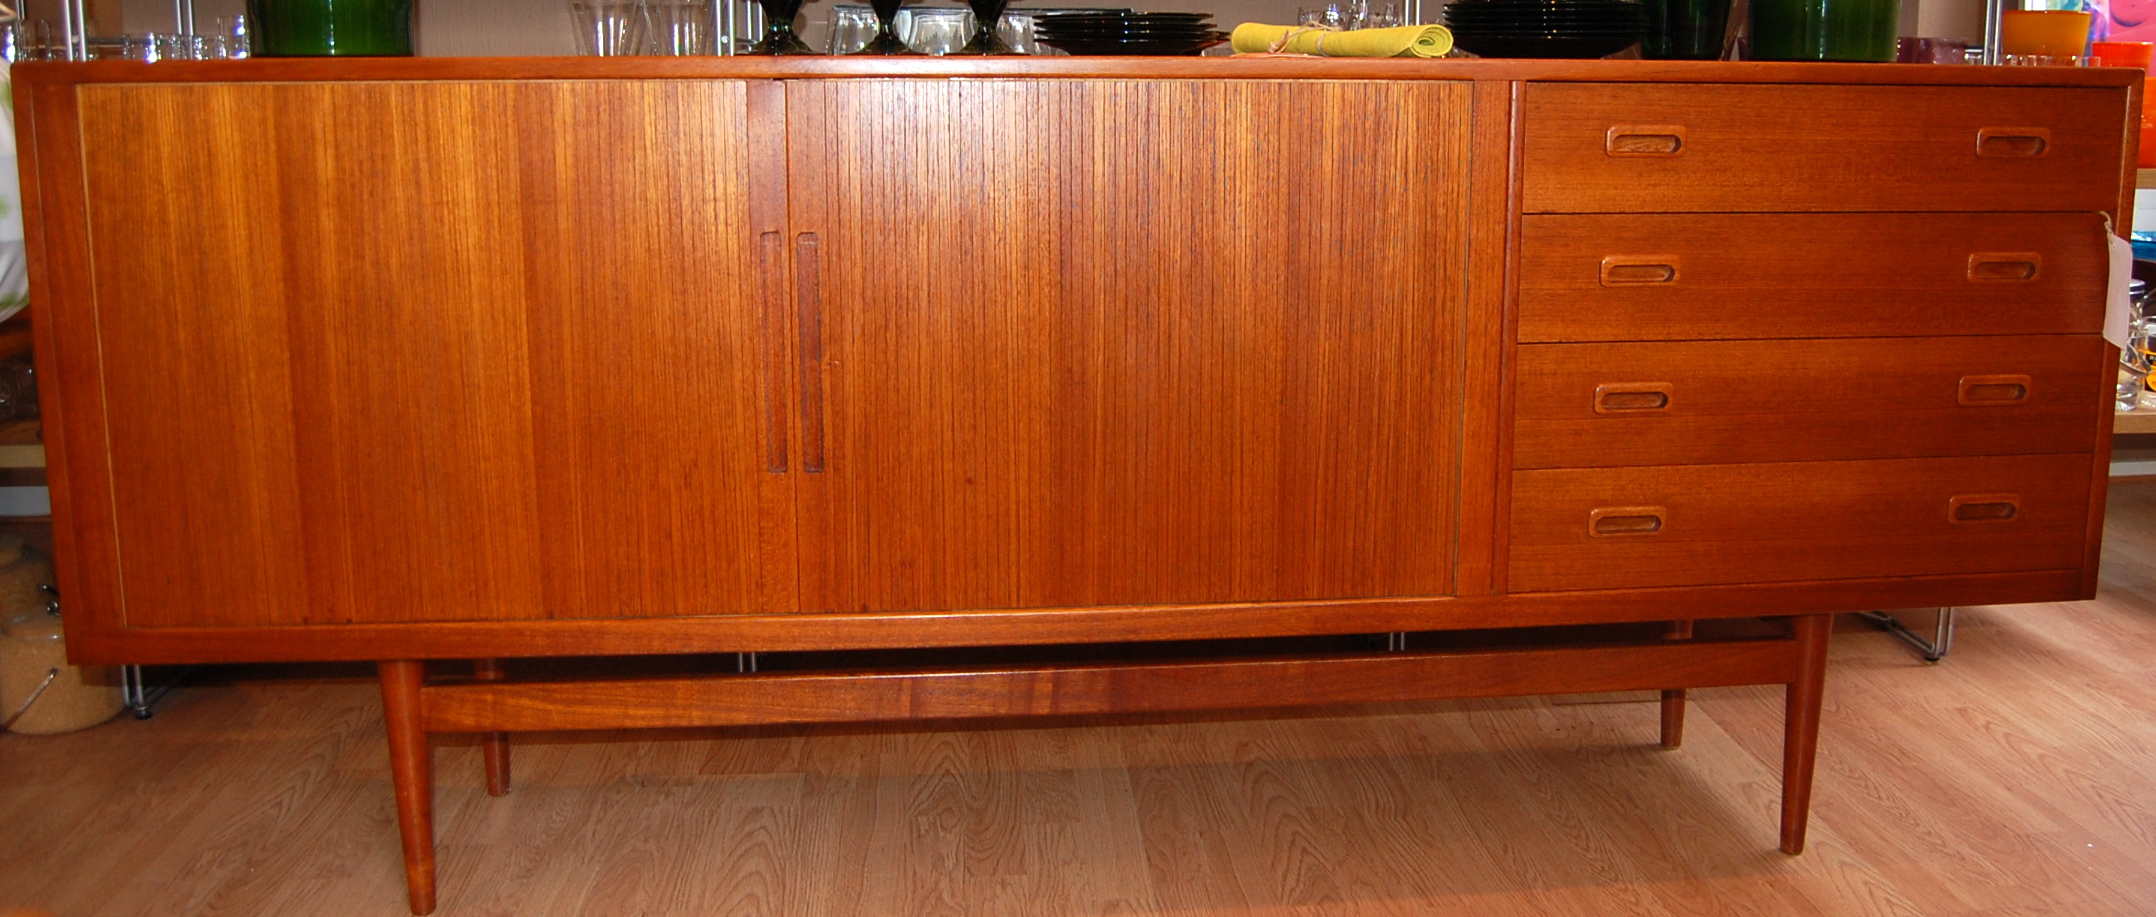 sideboard danish sideboard mid century sideboard ebay 72 mid century danish teak credenza. Black Bedroom Furniture Sets. Home Design Ideas